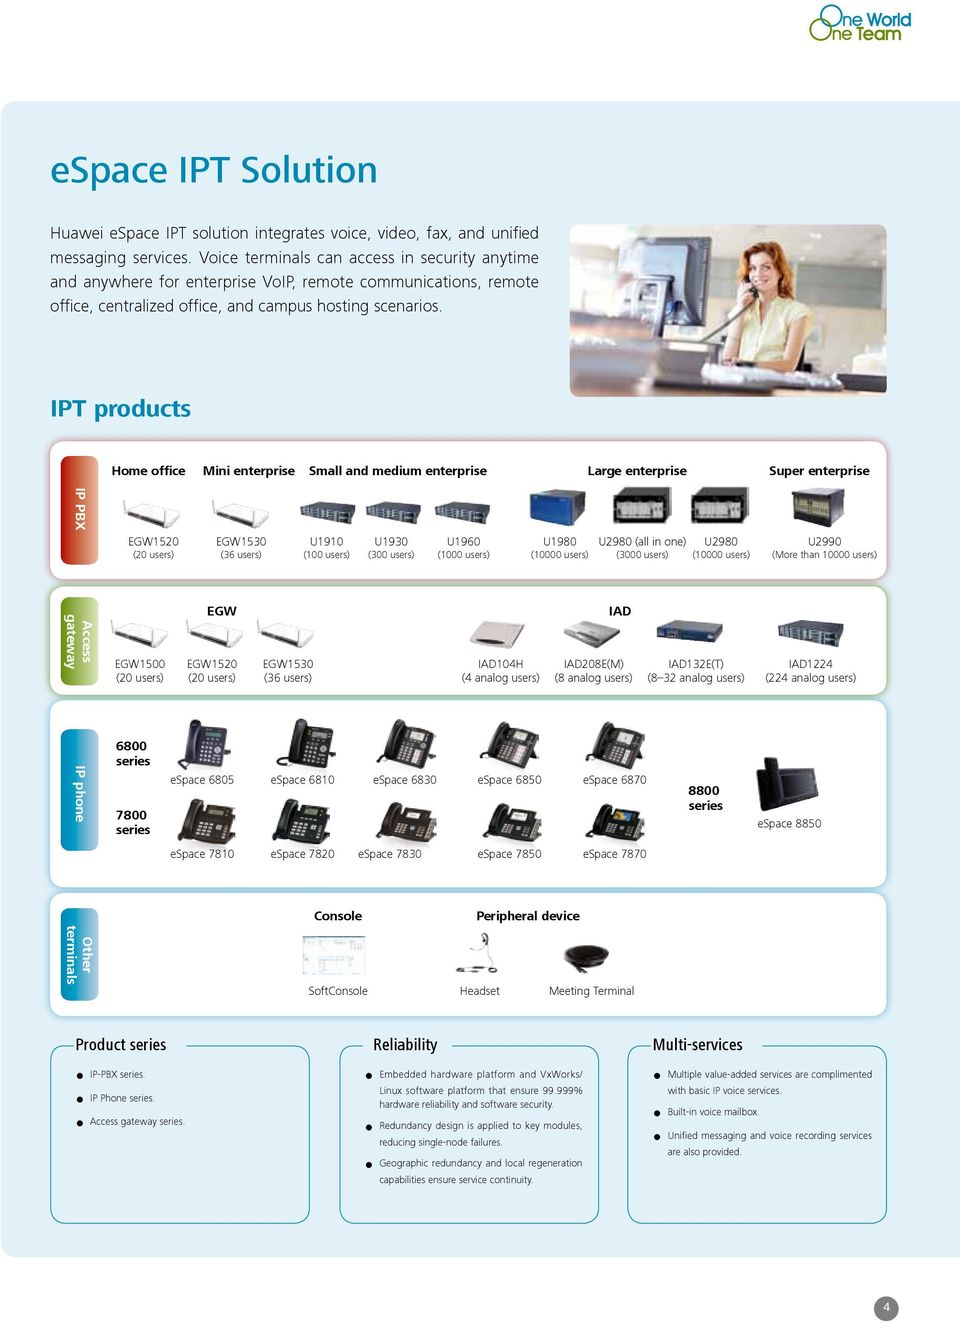 IPT products Home office Mini enterprise Small and medium enterprise Large enterprise Super enterprise IP PBX EGW1520 (20 users) EGW1530 (36 users) U1910 (100 users) U1930 (300 users) U1960 (1000